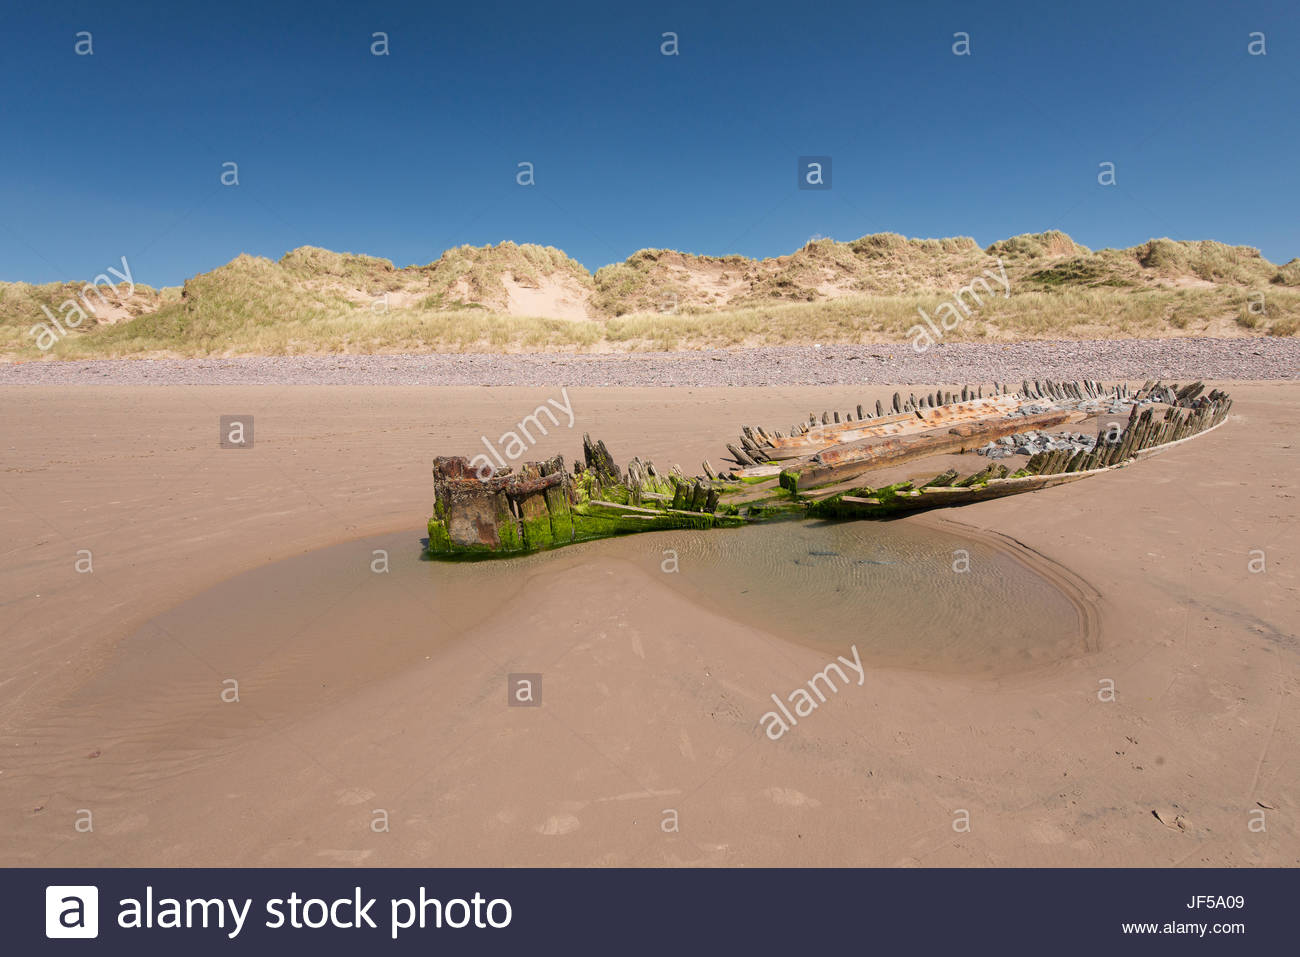 The remains of the Sunbeam schooner shipwreck which occurred in 1903. - Stock Image